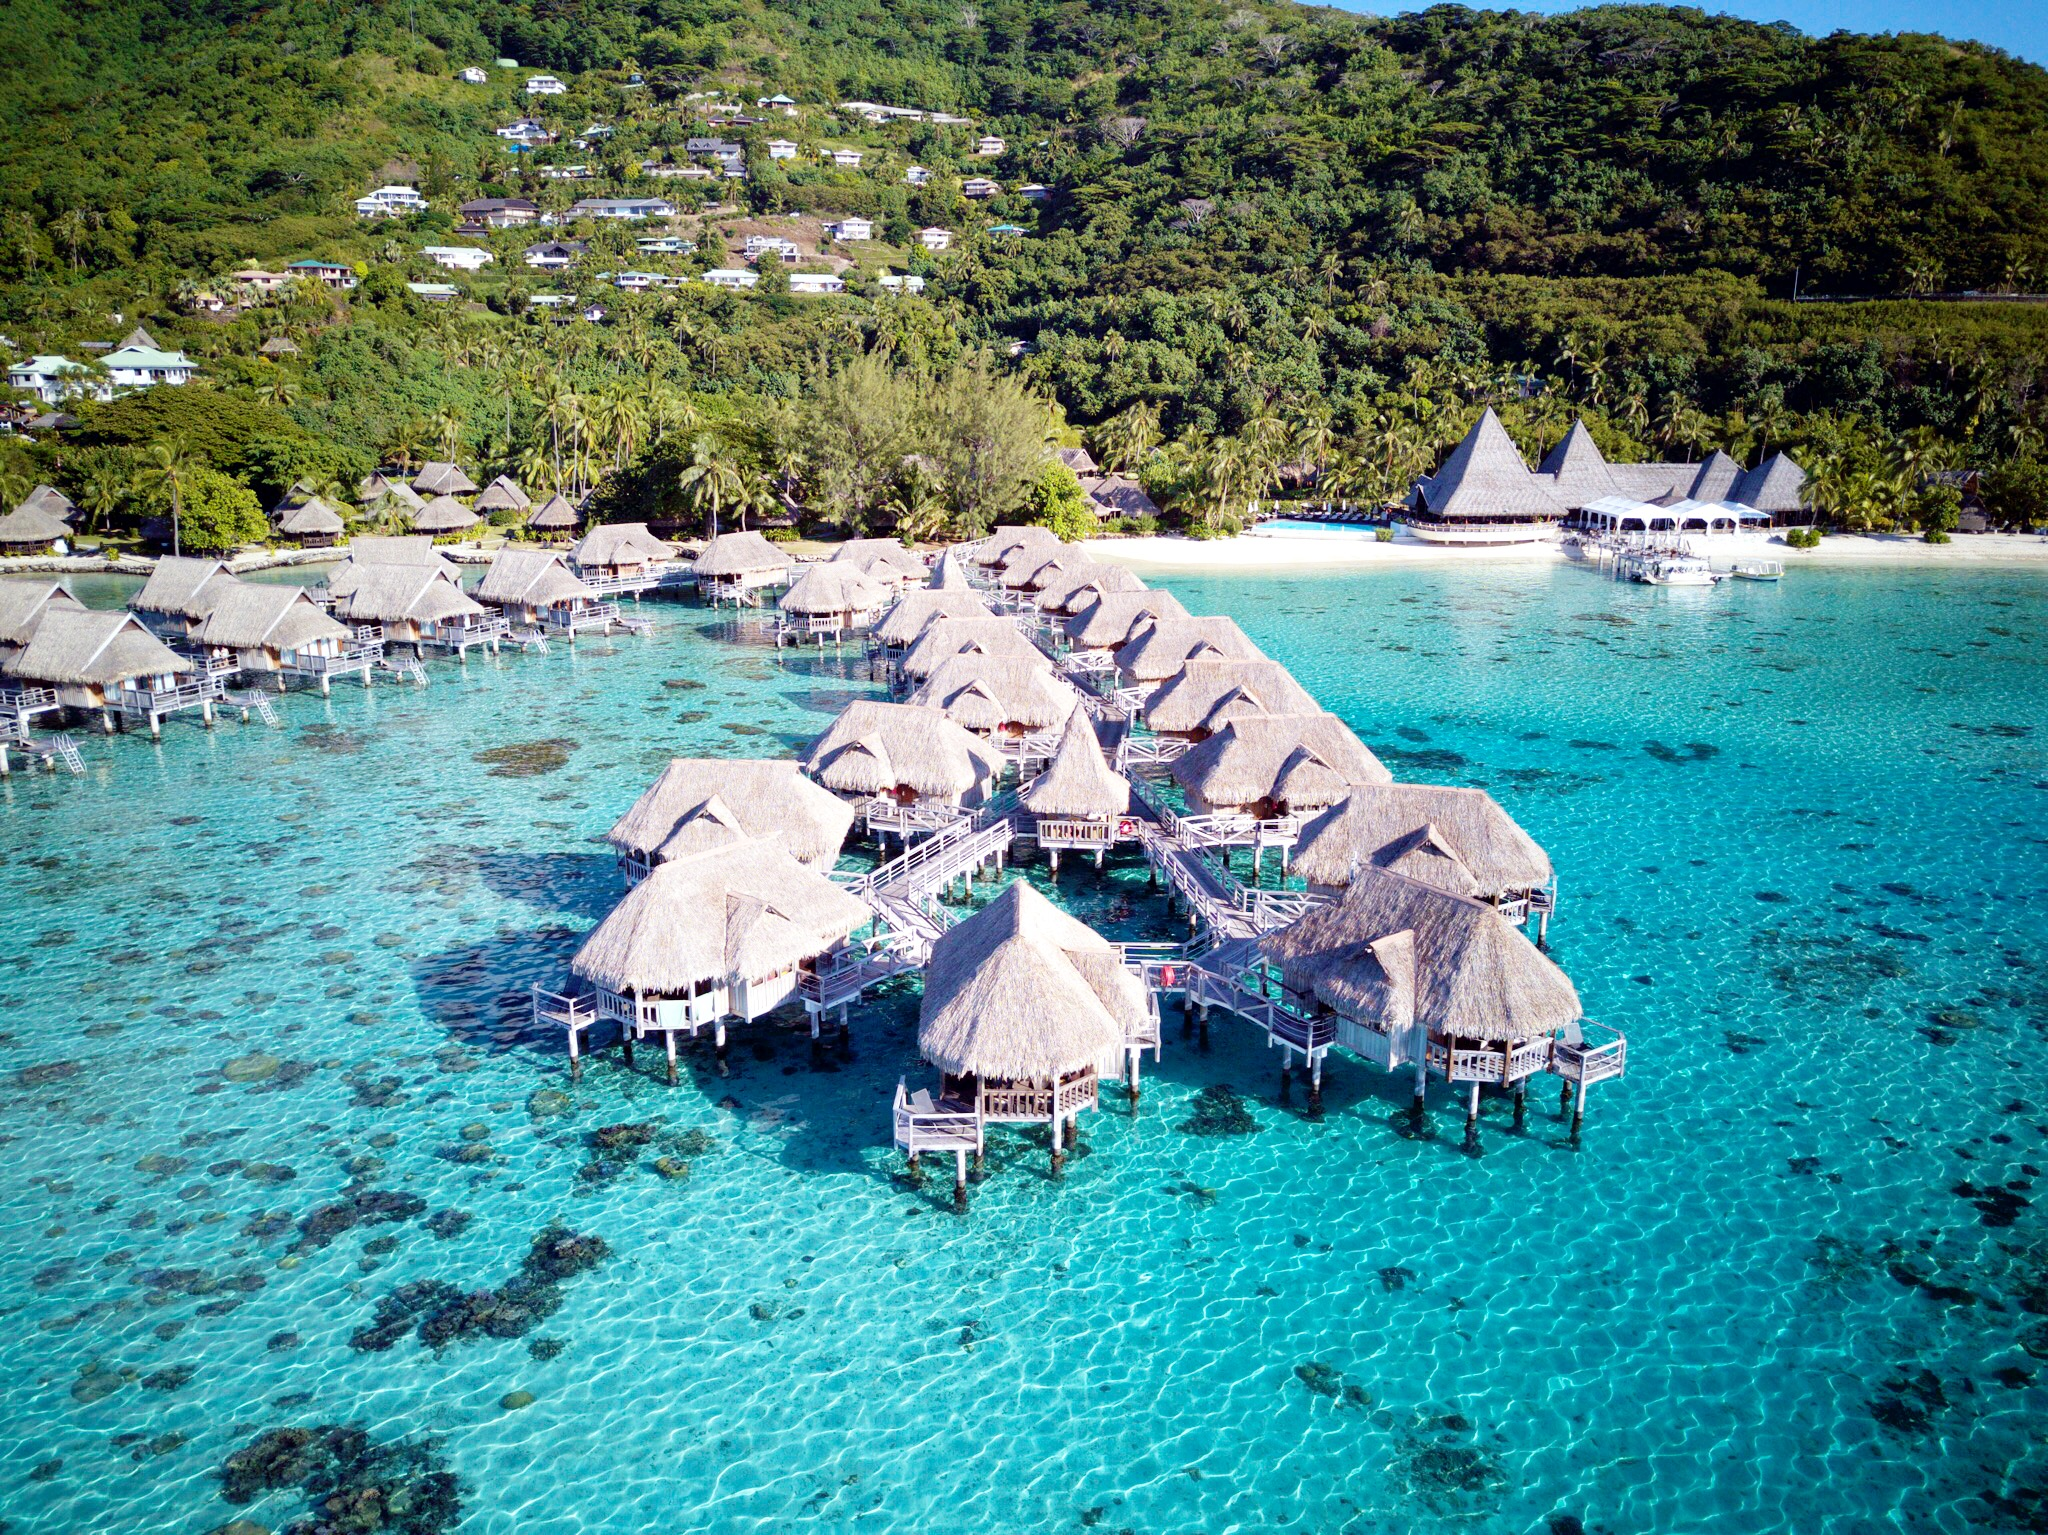 21 Drone Photos of Overwater Bungalows In Tahiti - Overwater bungalows - overwater bungalows caribbean - Overwater bungalows Mexico - Bora Bora Overwater Bungalows - Hotels With overwater bungalows - water bungalows - huts over water - overwater bungalow vacation - overwater bungalow vacation - Tahiti Honeymoon - Honeymoon Trip Ideas - Communikait by Kait Hanson #overwaterbungalows #honeymoon #tahiti #frenchpolynesia #moorea #borabora #tahaa #bestresorts